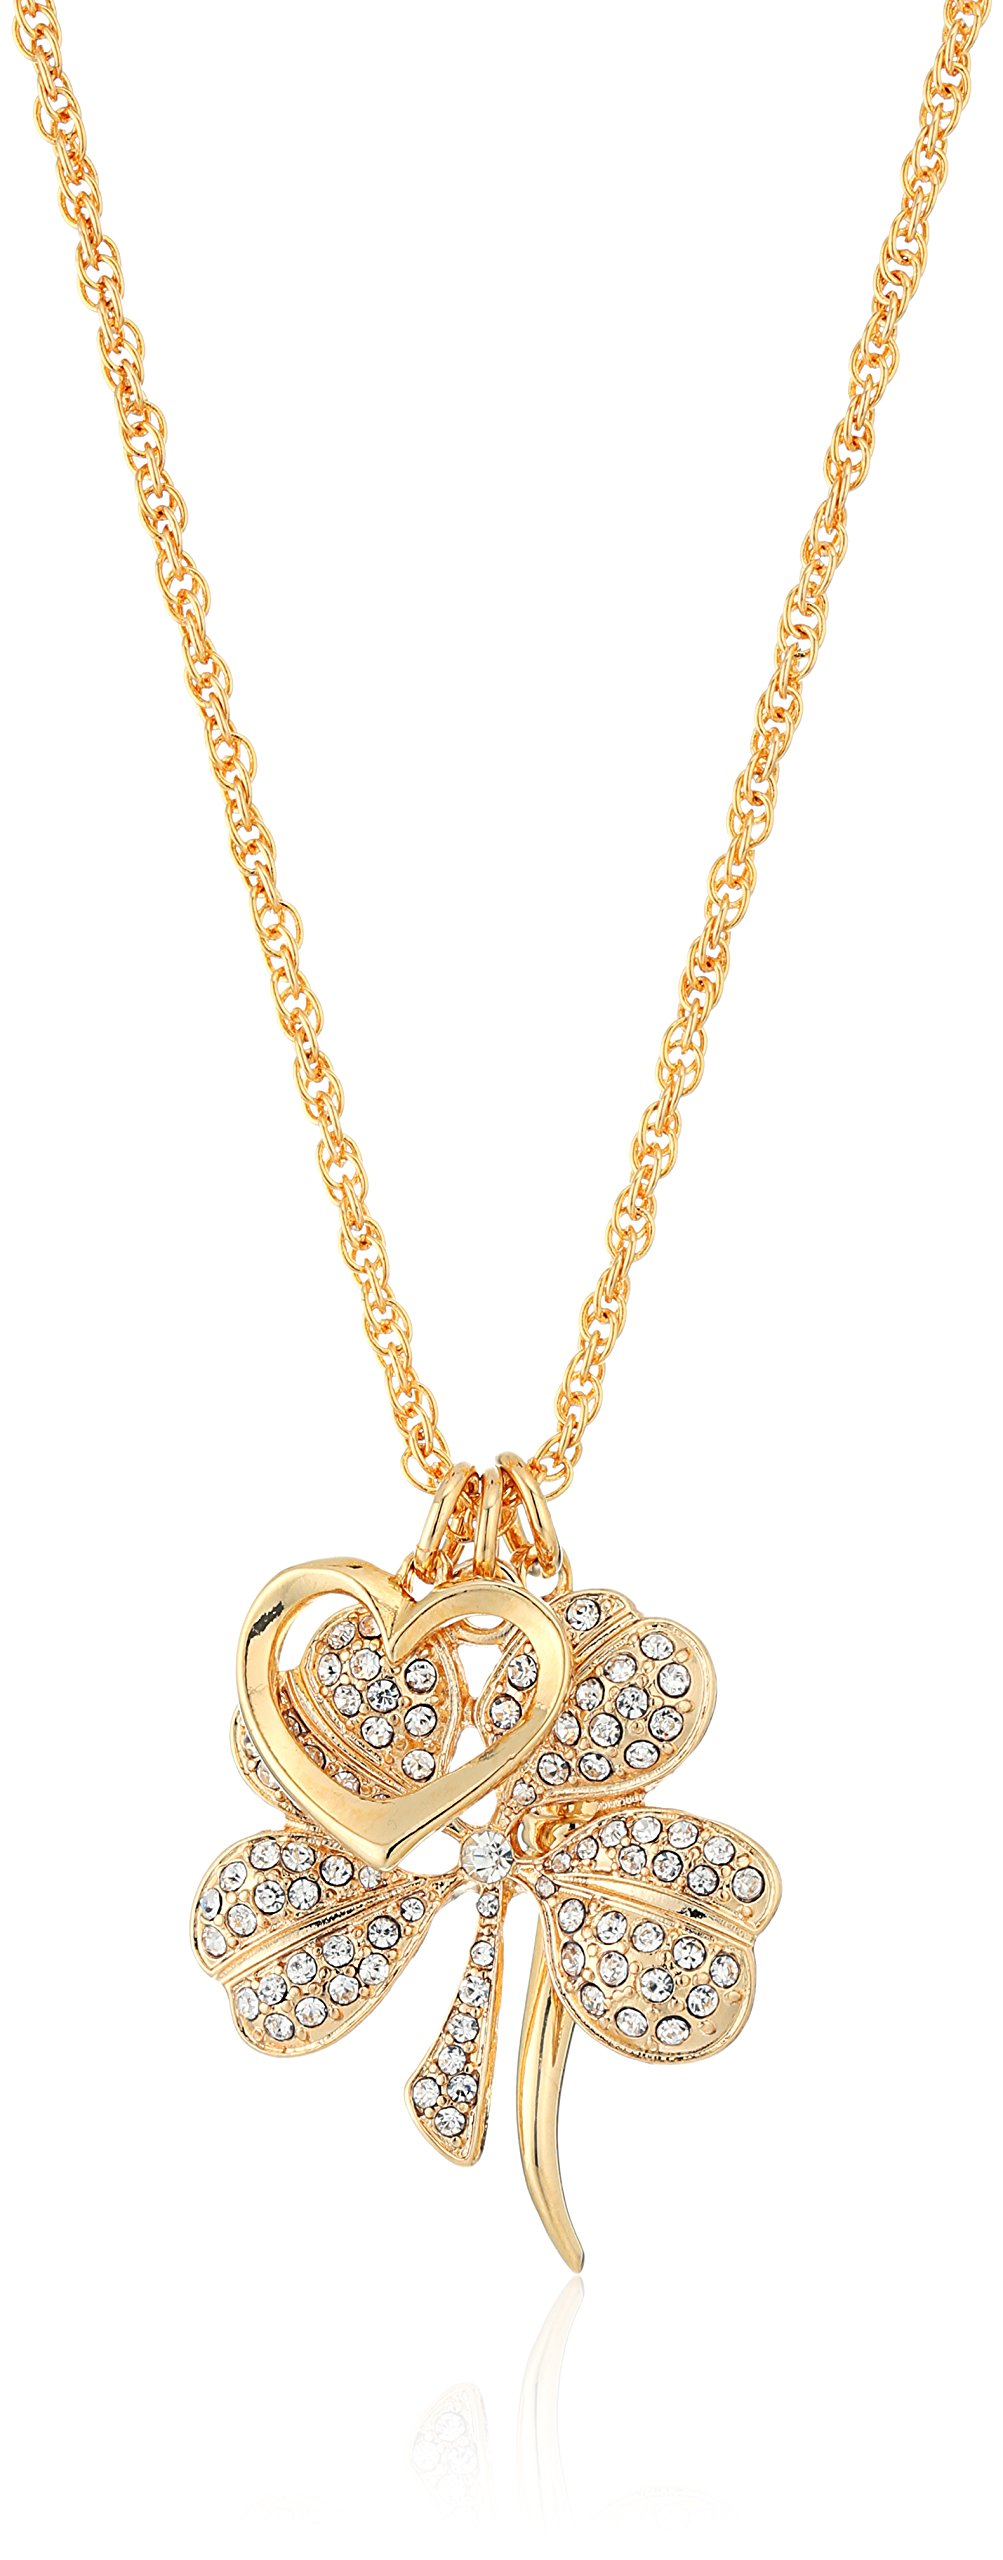 Kenneth Jay Lane Gold and Crystal Multi Charm Pendant Necklace, 33'' by Kenneth Jay Lane